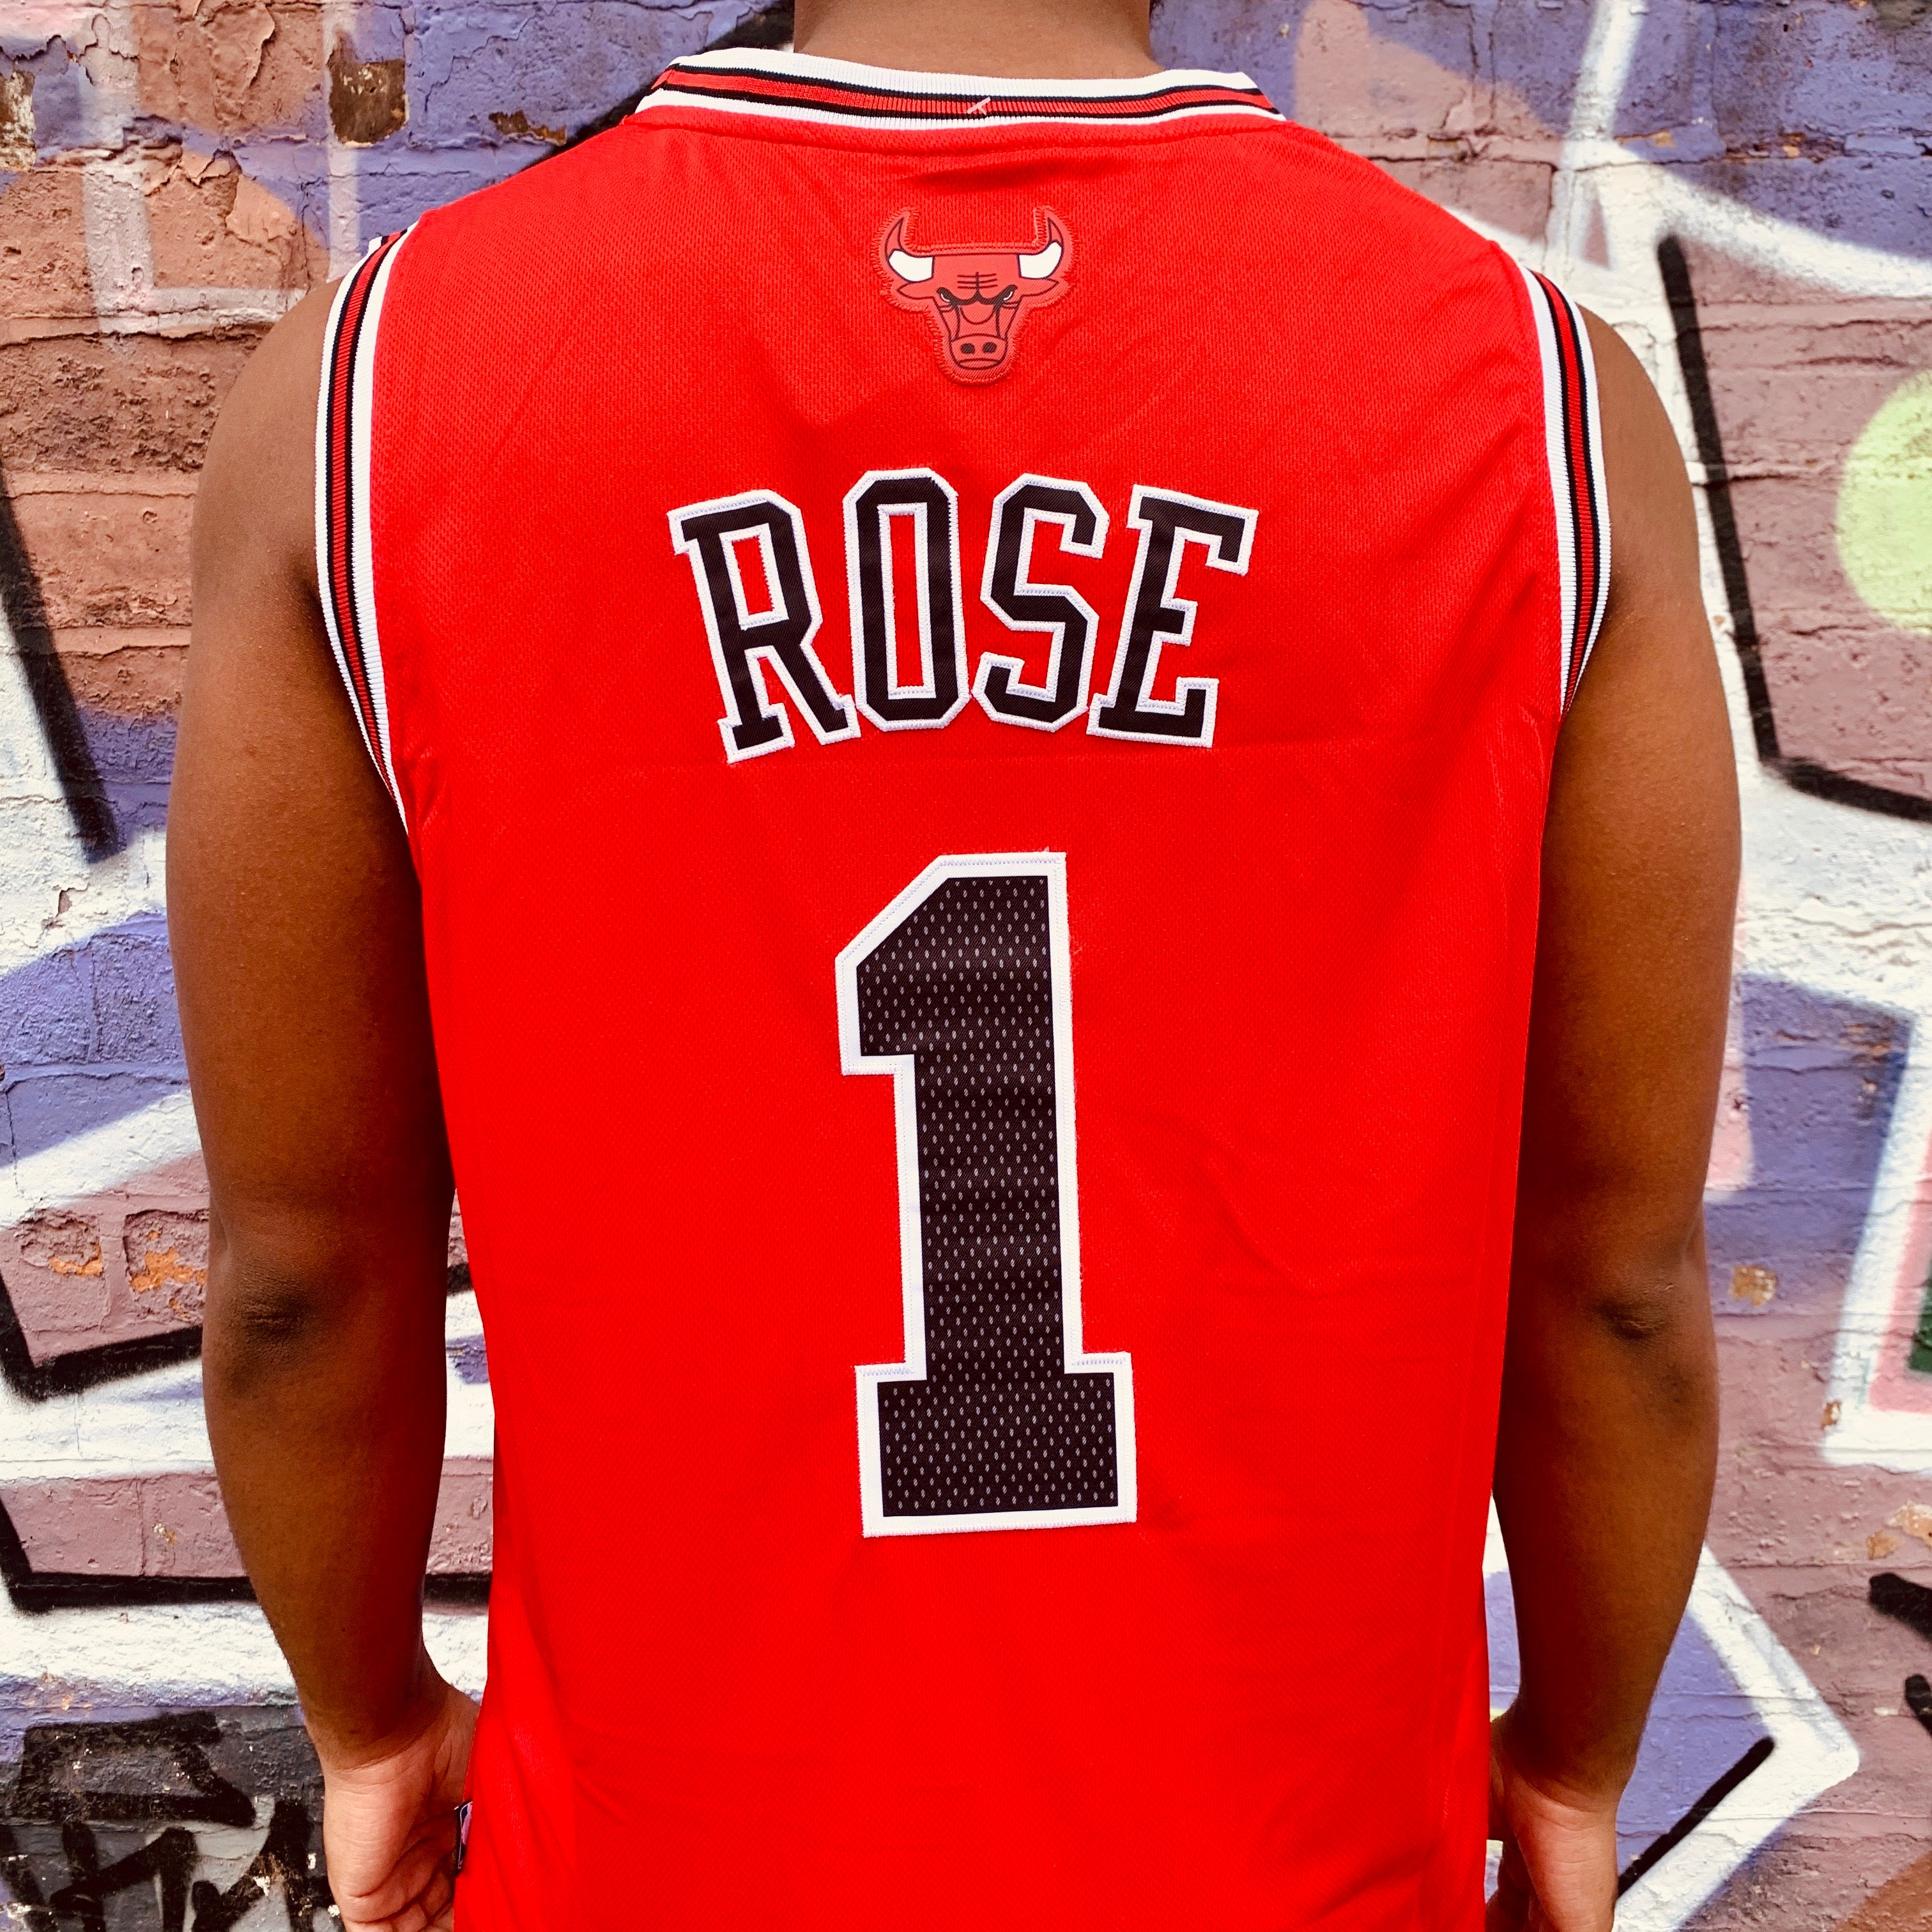 CHICAGO BULLS RED BASKETBALL JERSEY - DERRICK ROSE 1